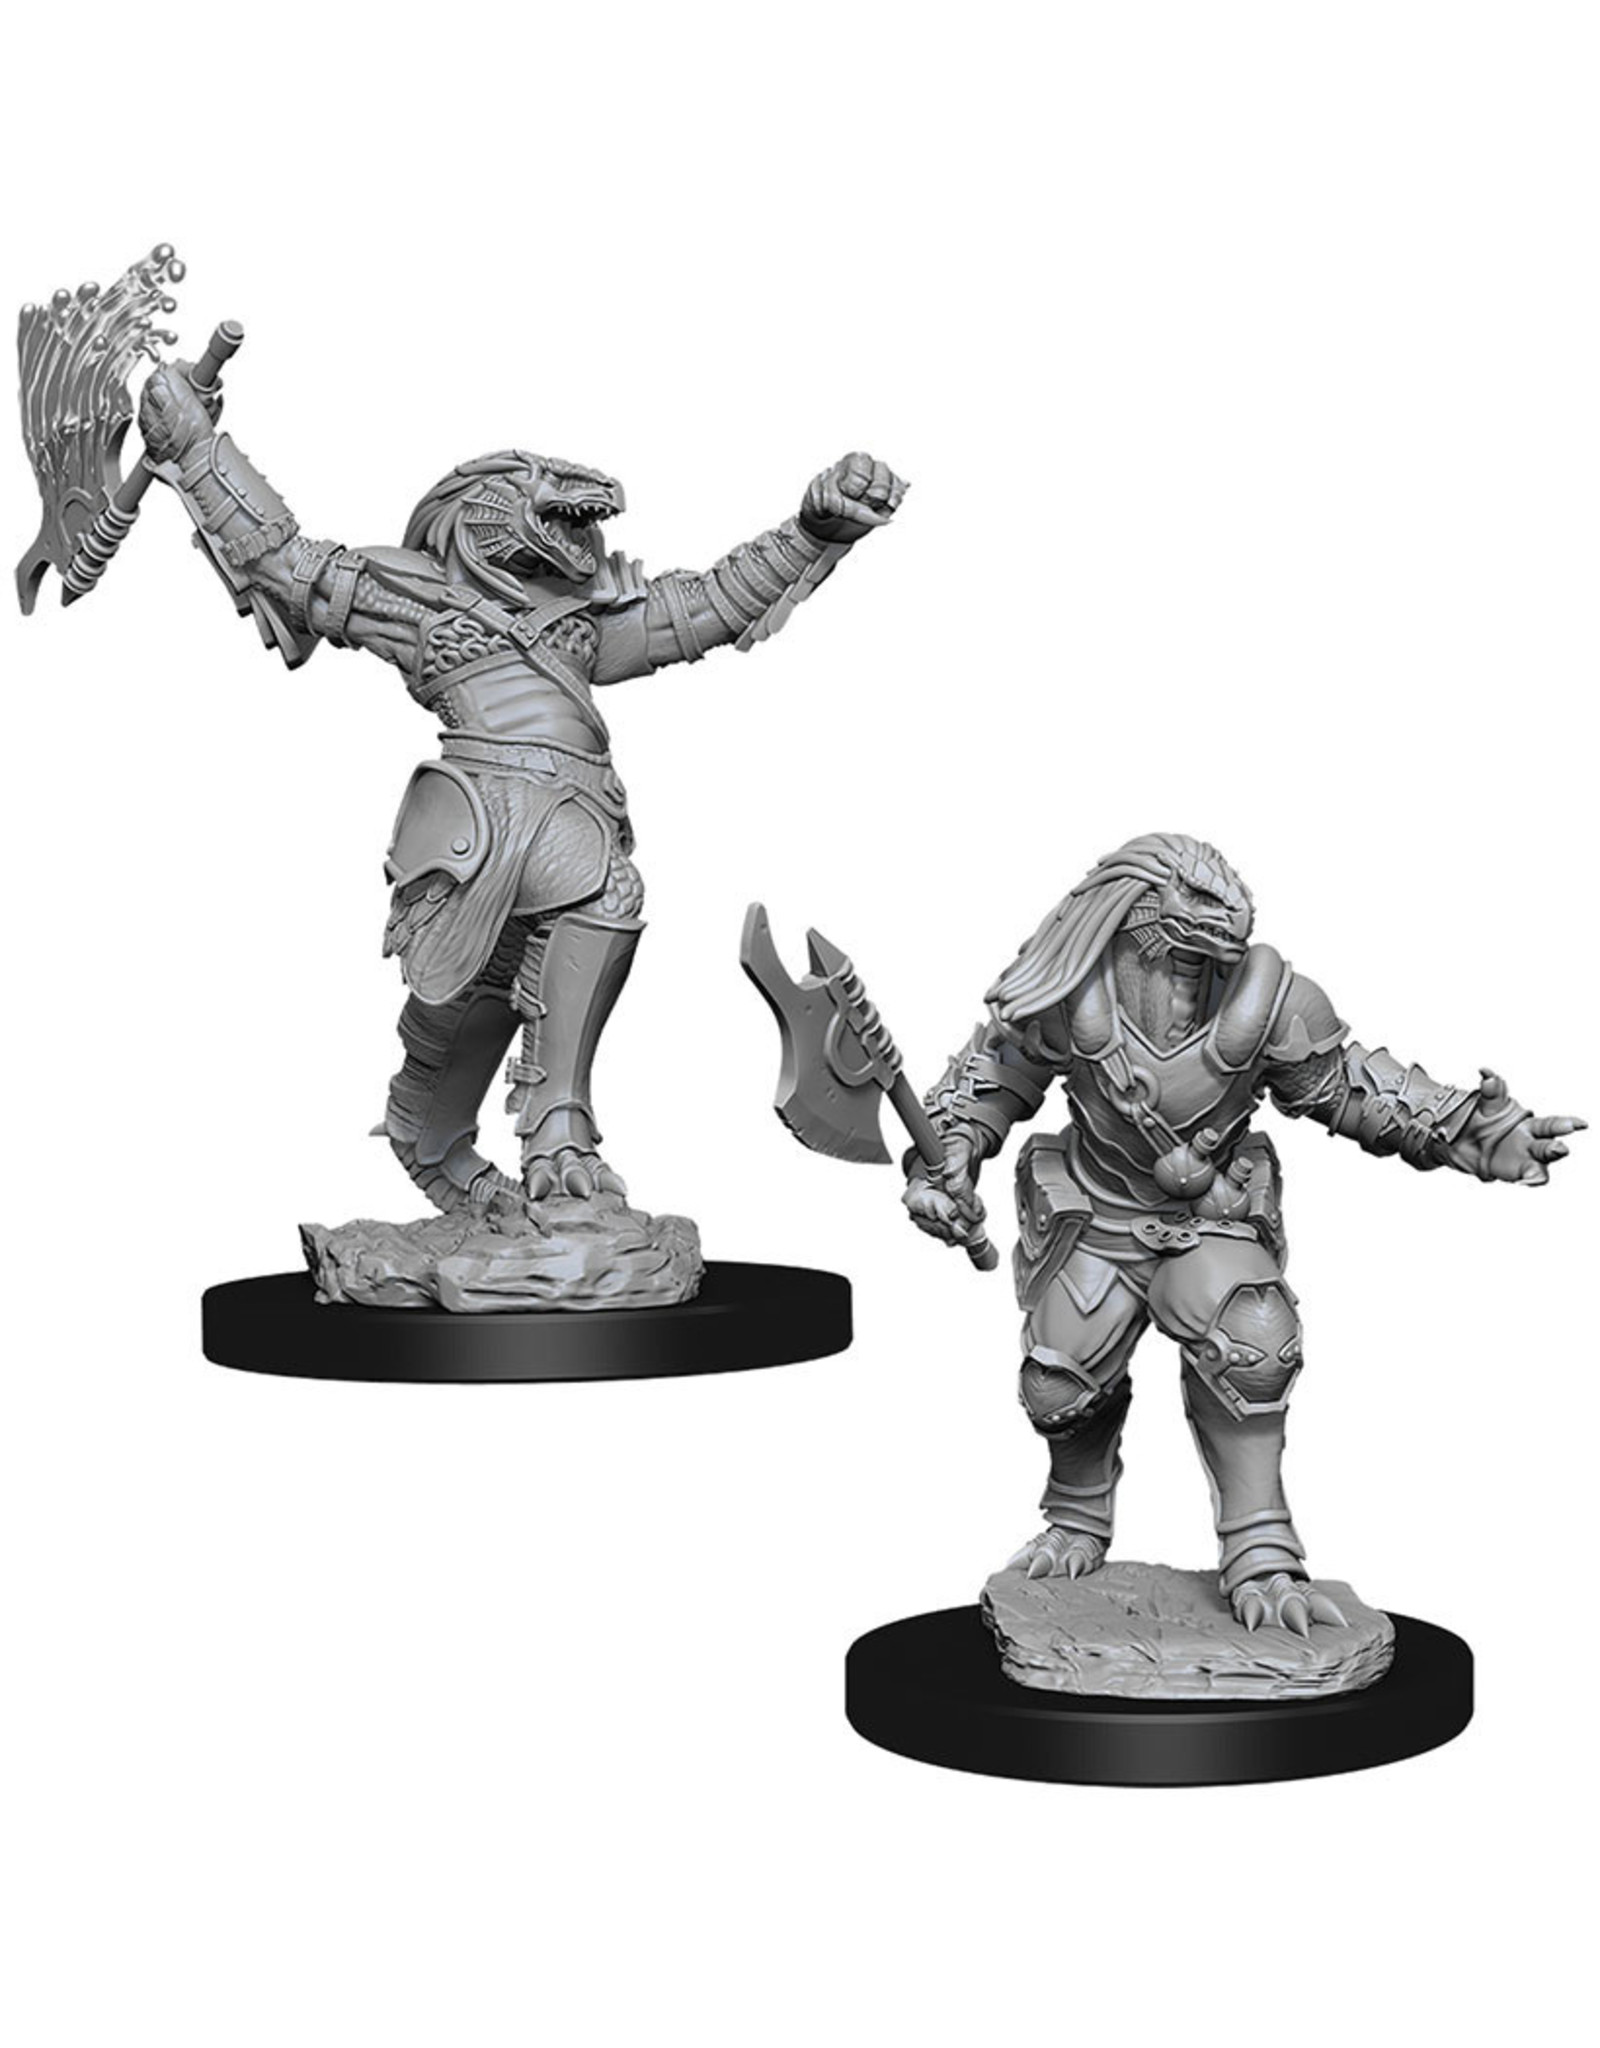 WizKids D&D Minis (unpainted) Dragonborn Fighter (female) Wave 11, 90001